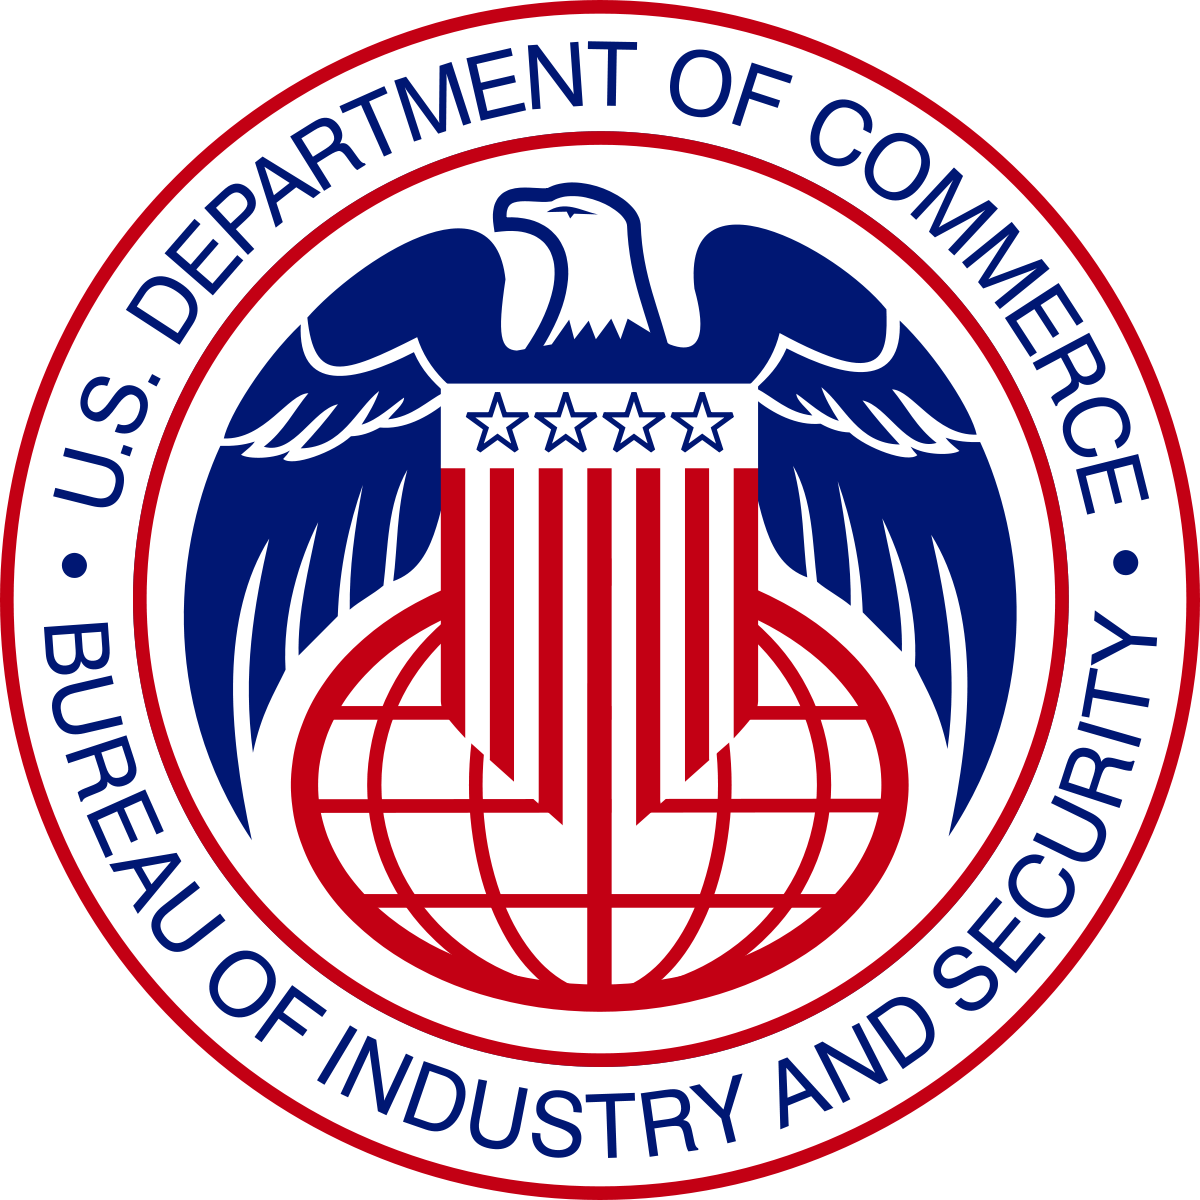 Bureau of Industry and Security.